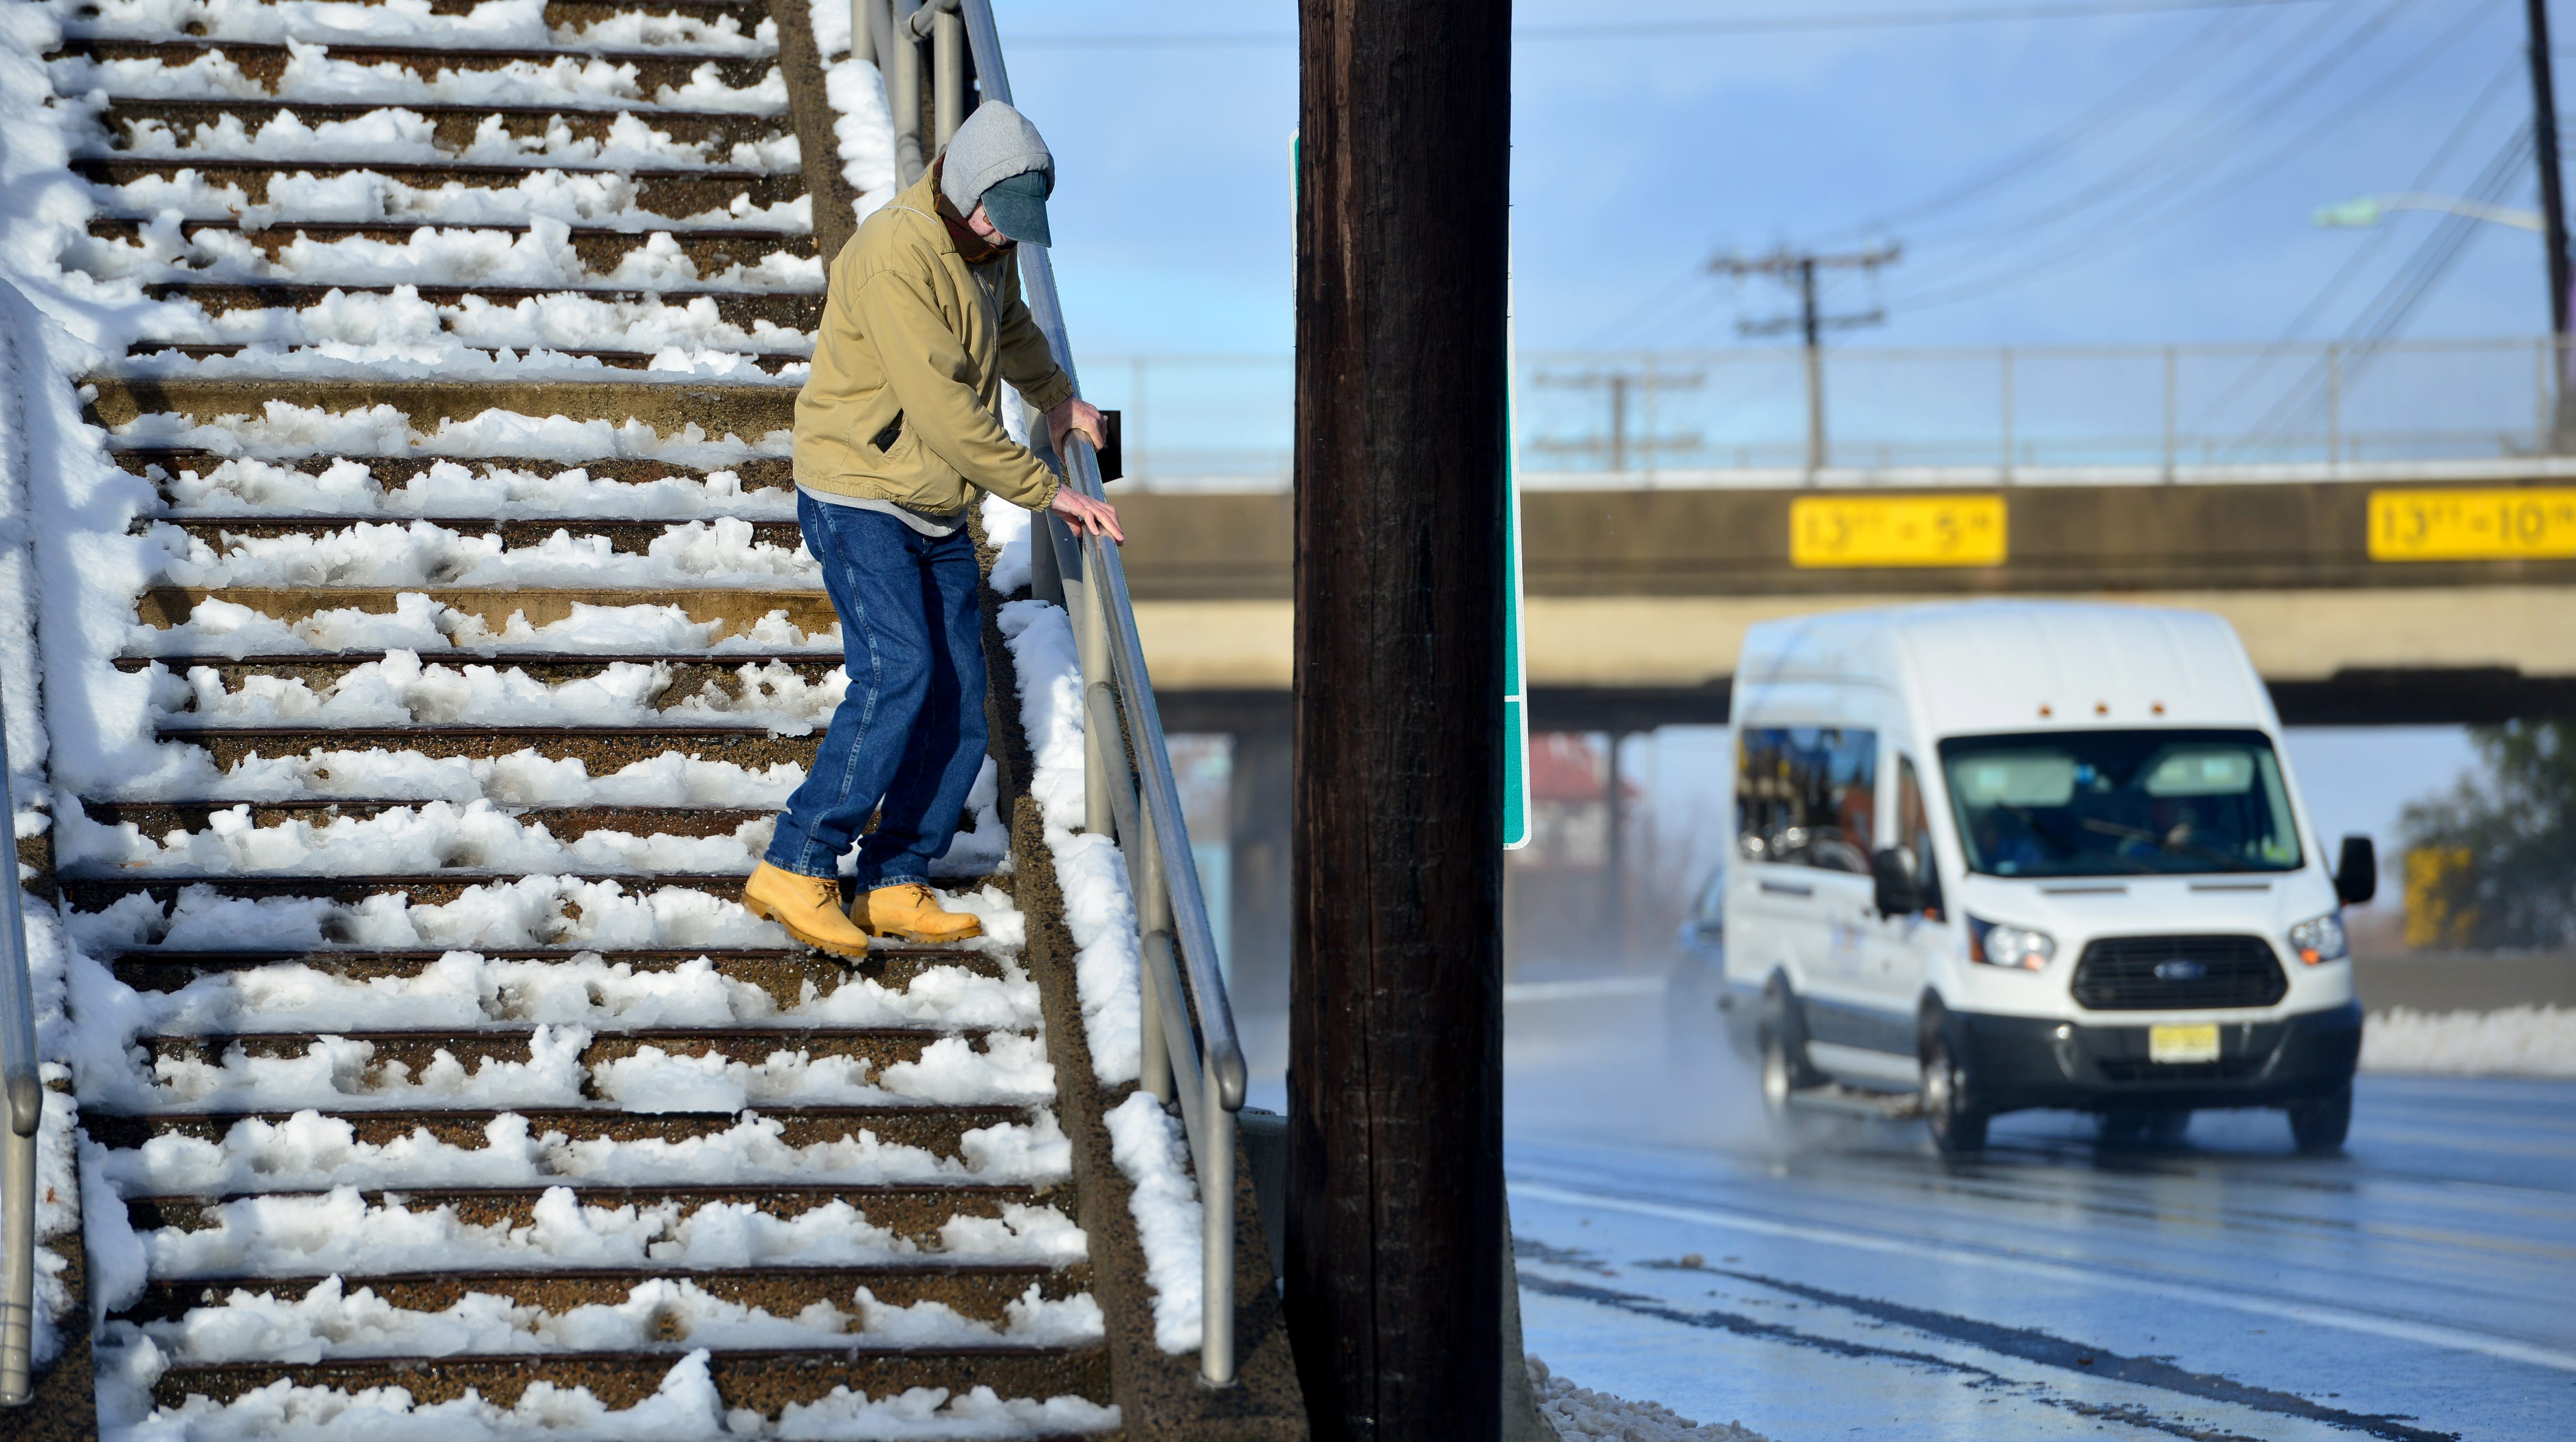 These are some of the worst commuter stories we heard from Thursday's snowstorm